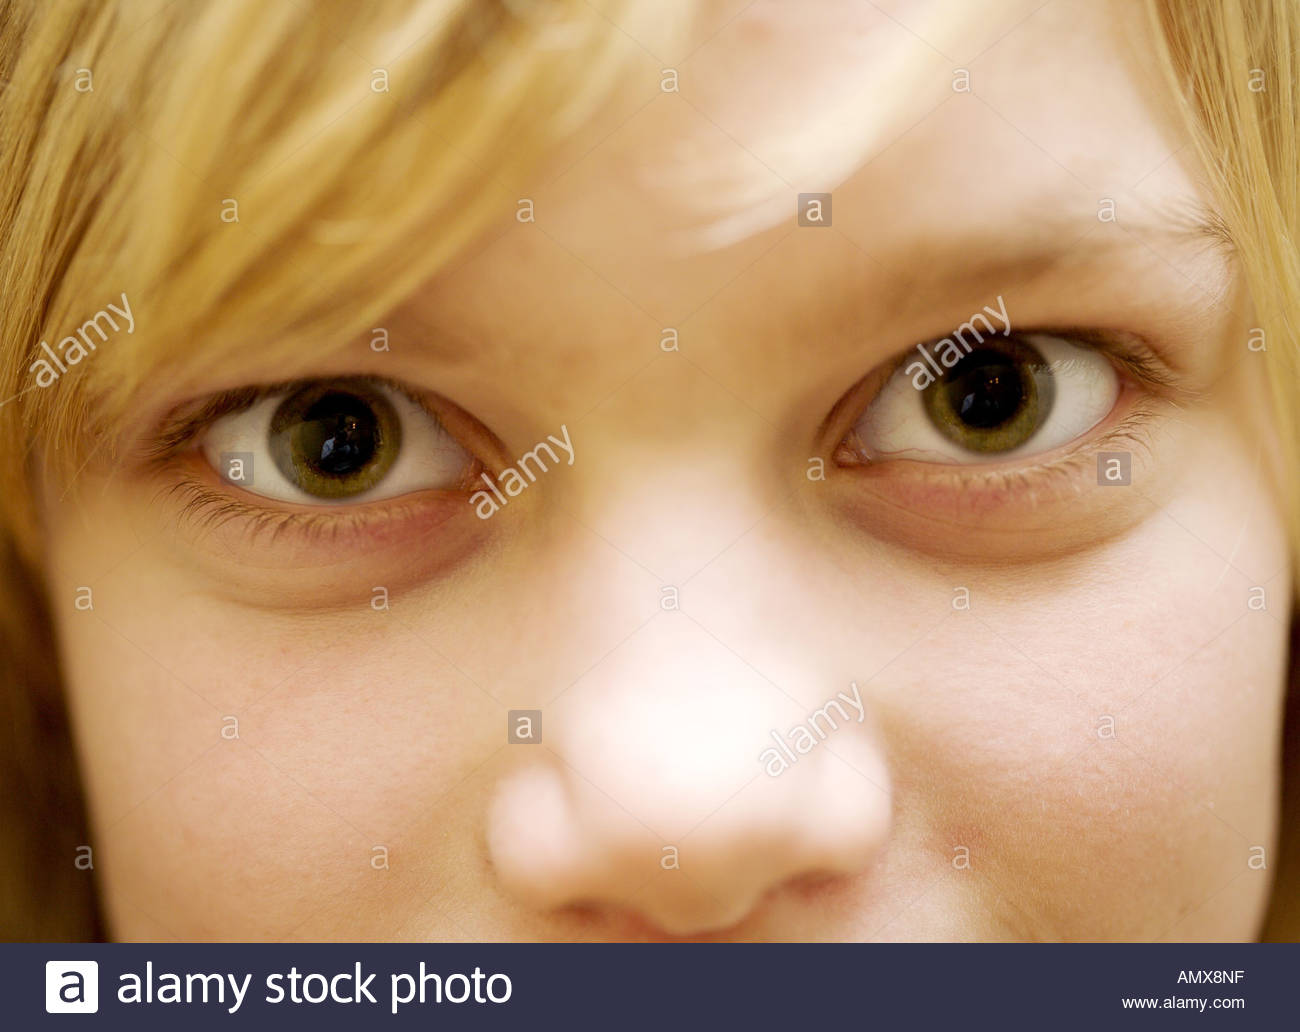 Child s face eyes wide open - Stock Image